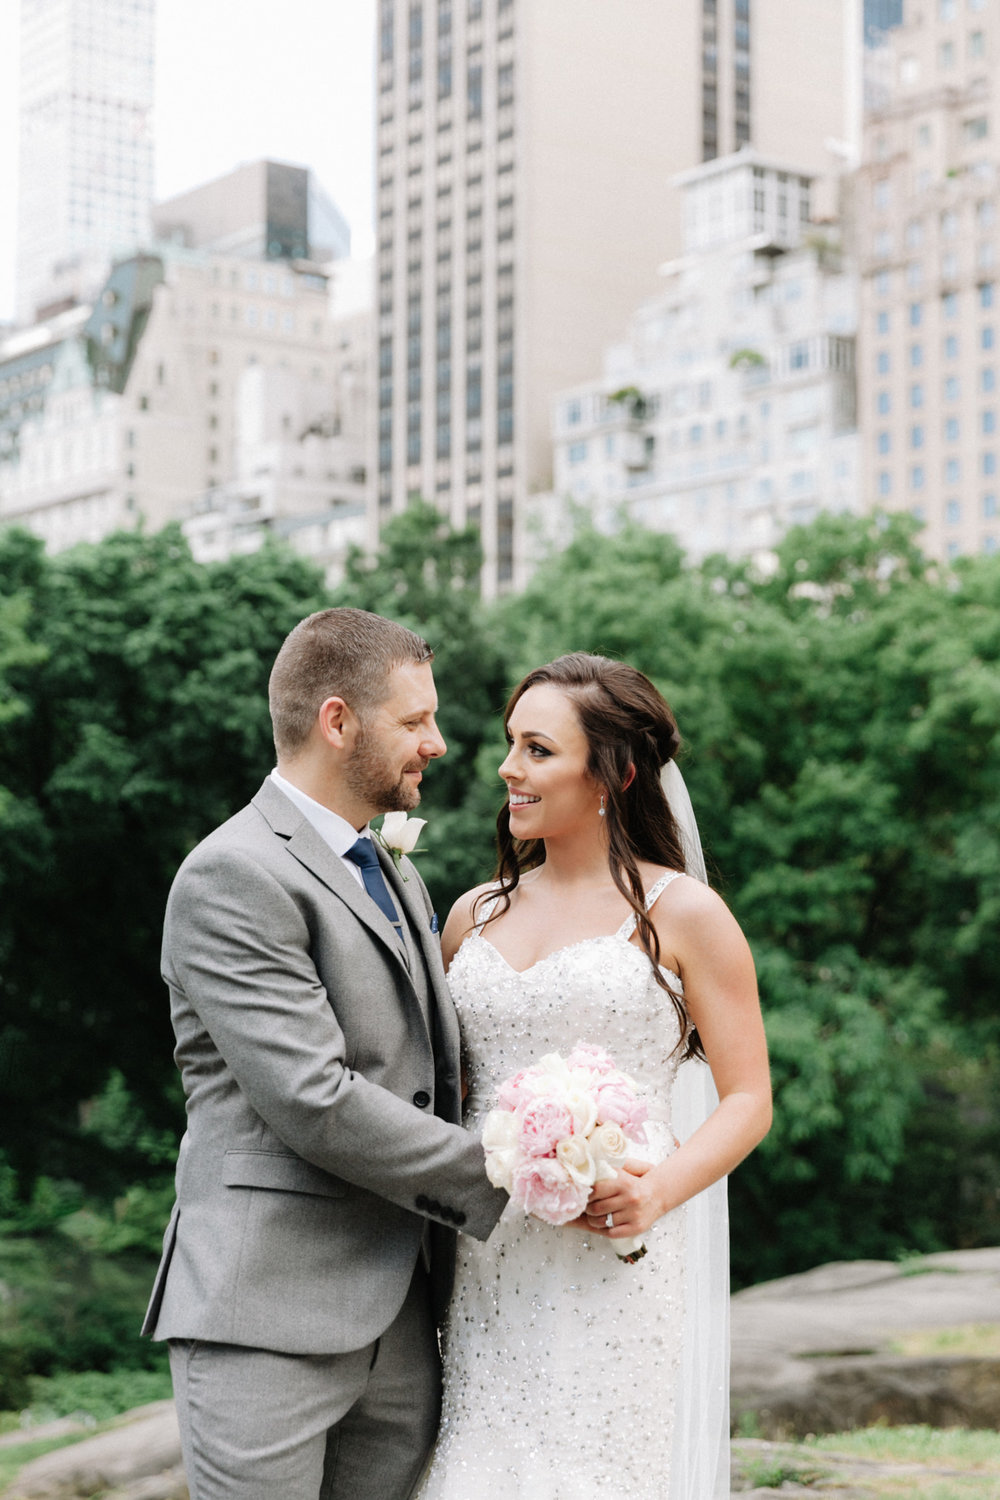 Plaza-hotel-central-park-wedding-A&M-17.jpg